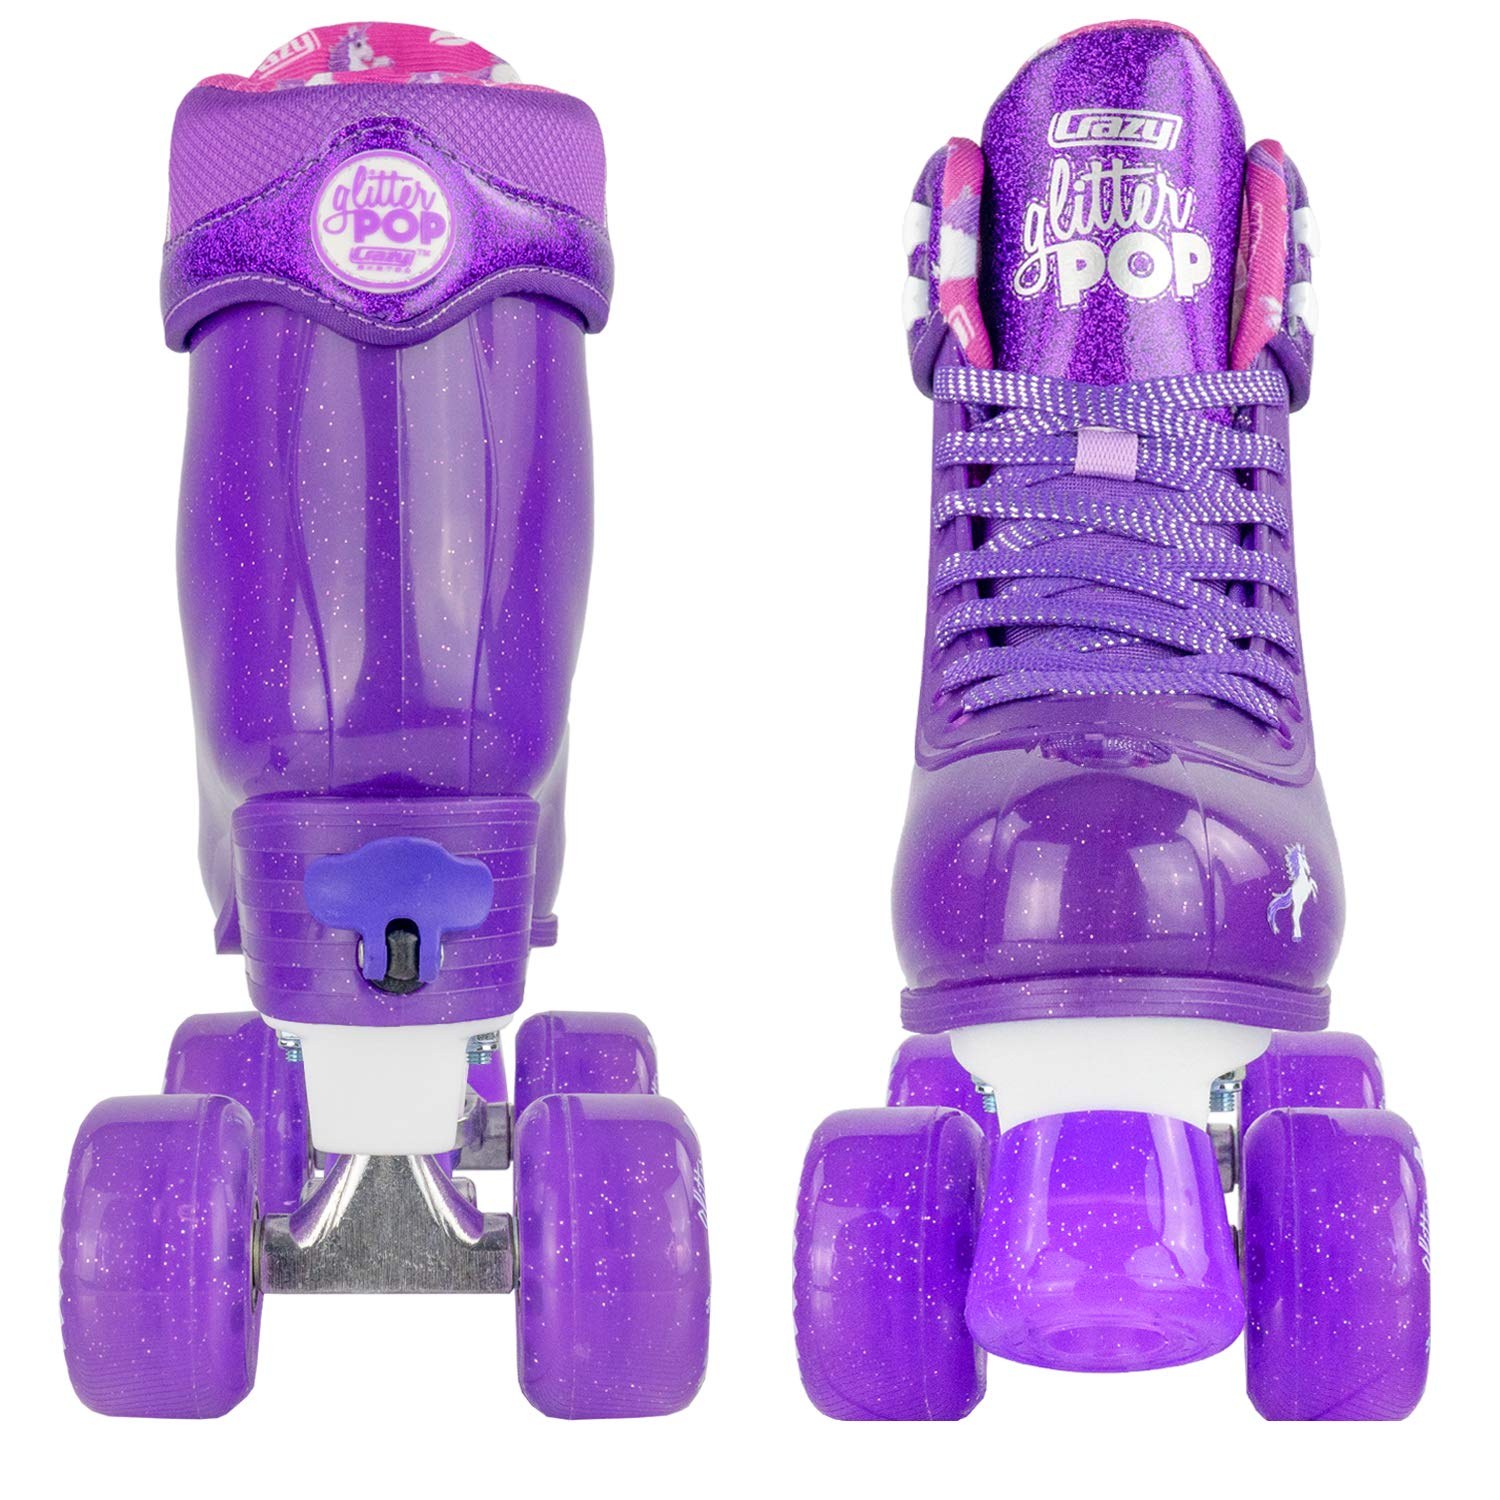 Crazy Skates Glitter POP Adjustable Roller Skates for Girls and Boys | Size Adjustable Quad Skates That Fit 4 Shoe Sizes | Purple (Sizes 3-6) by Crazy Skates (Image #9)